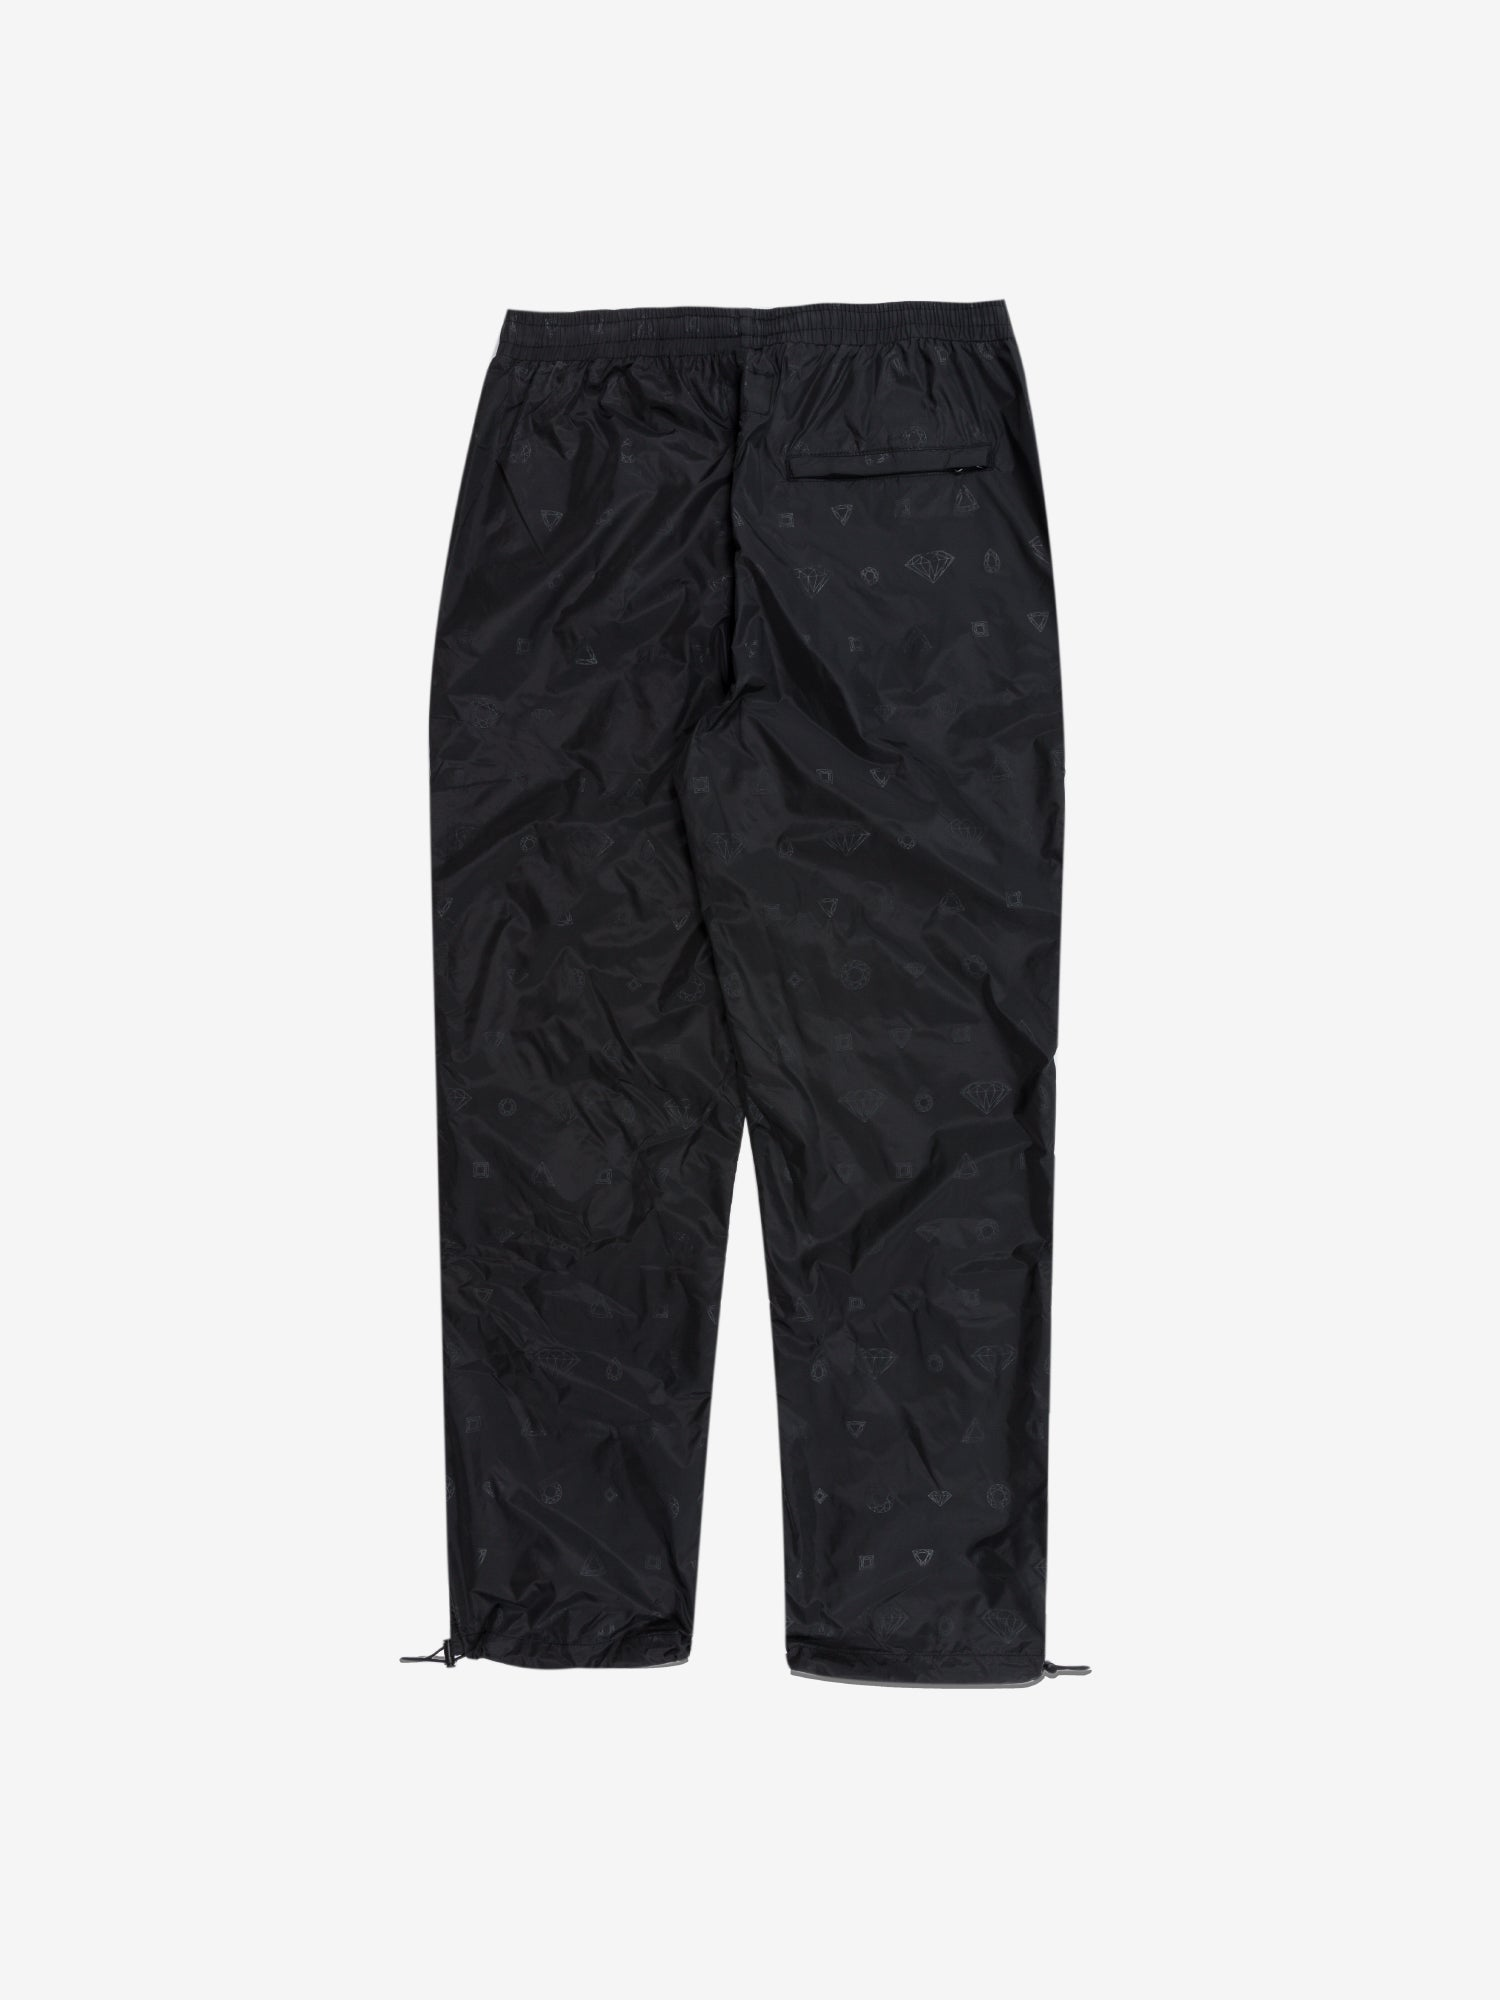 Monogram Track Pants - Black